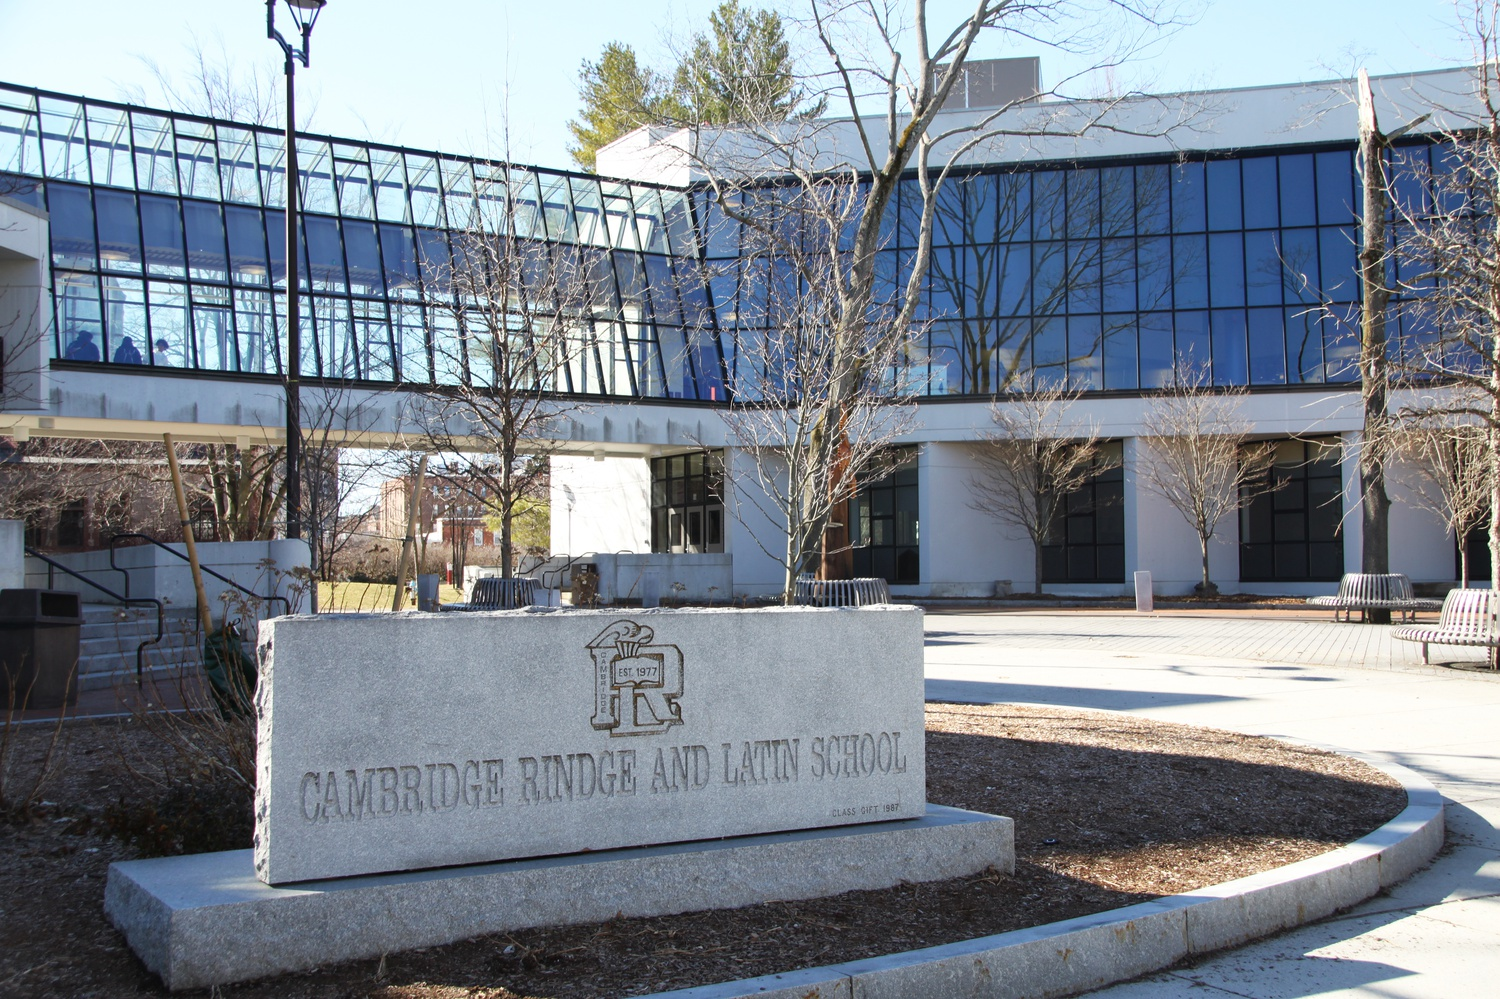 Harvard and MIT donated funds to support a temporary shelter at the Cambridge Rindge and Latin School.